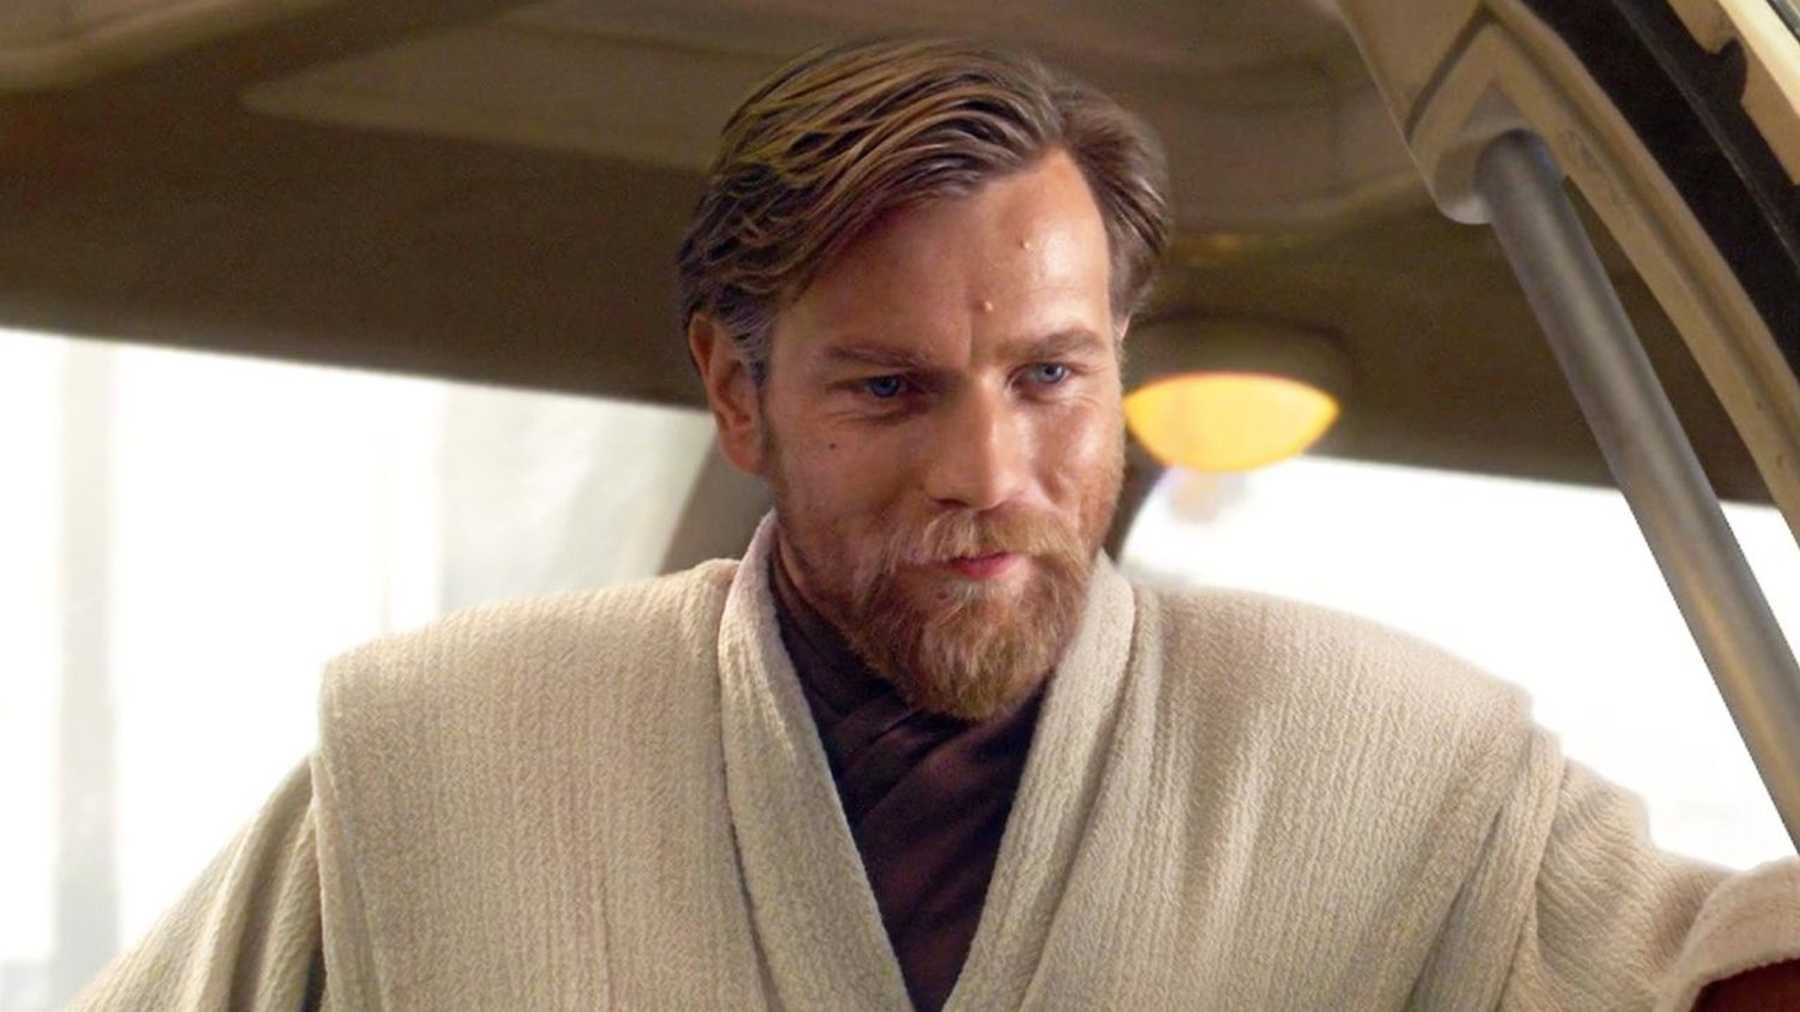 This 'Star Wars' Fan Theory Suggests Obi-Wan Kenobi Is the Most Powerful Jedi